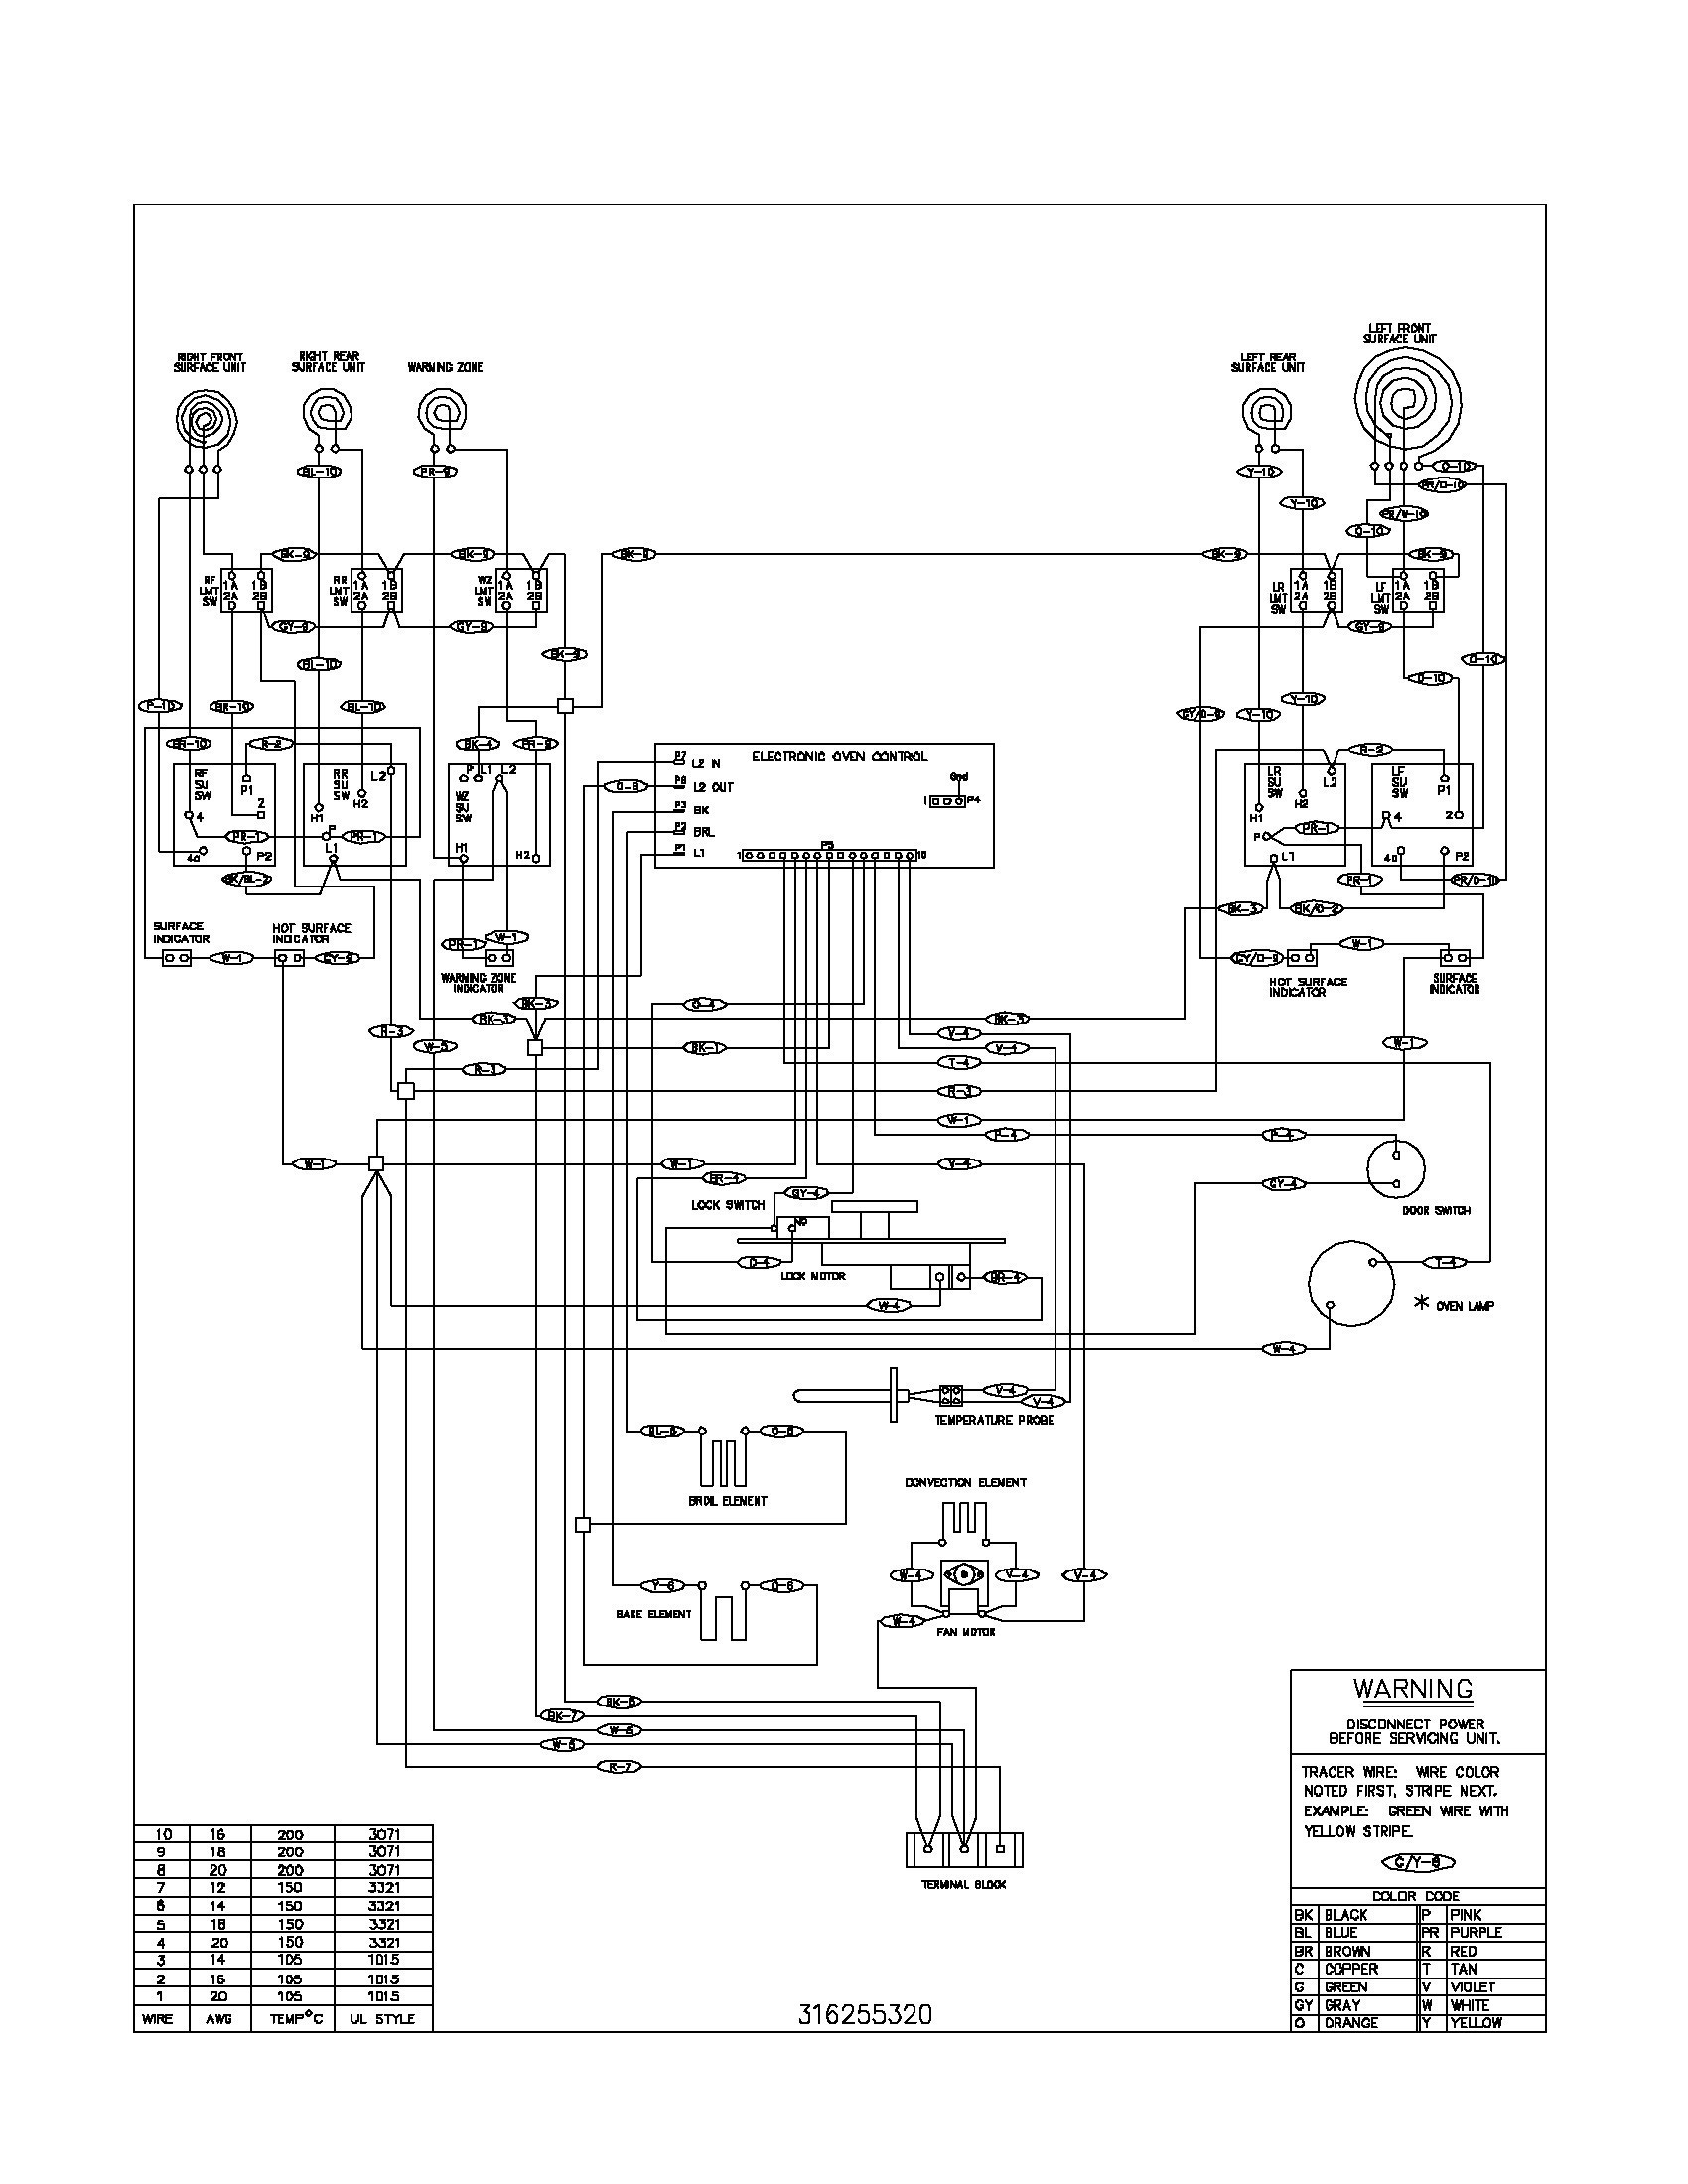 Wiring Diagram for Electric Stove Valid Electric Stove Wiring Diagram Lovely Cool Baking Oven Inside Range